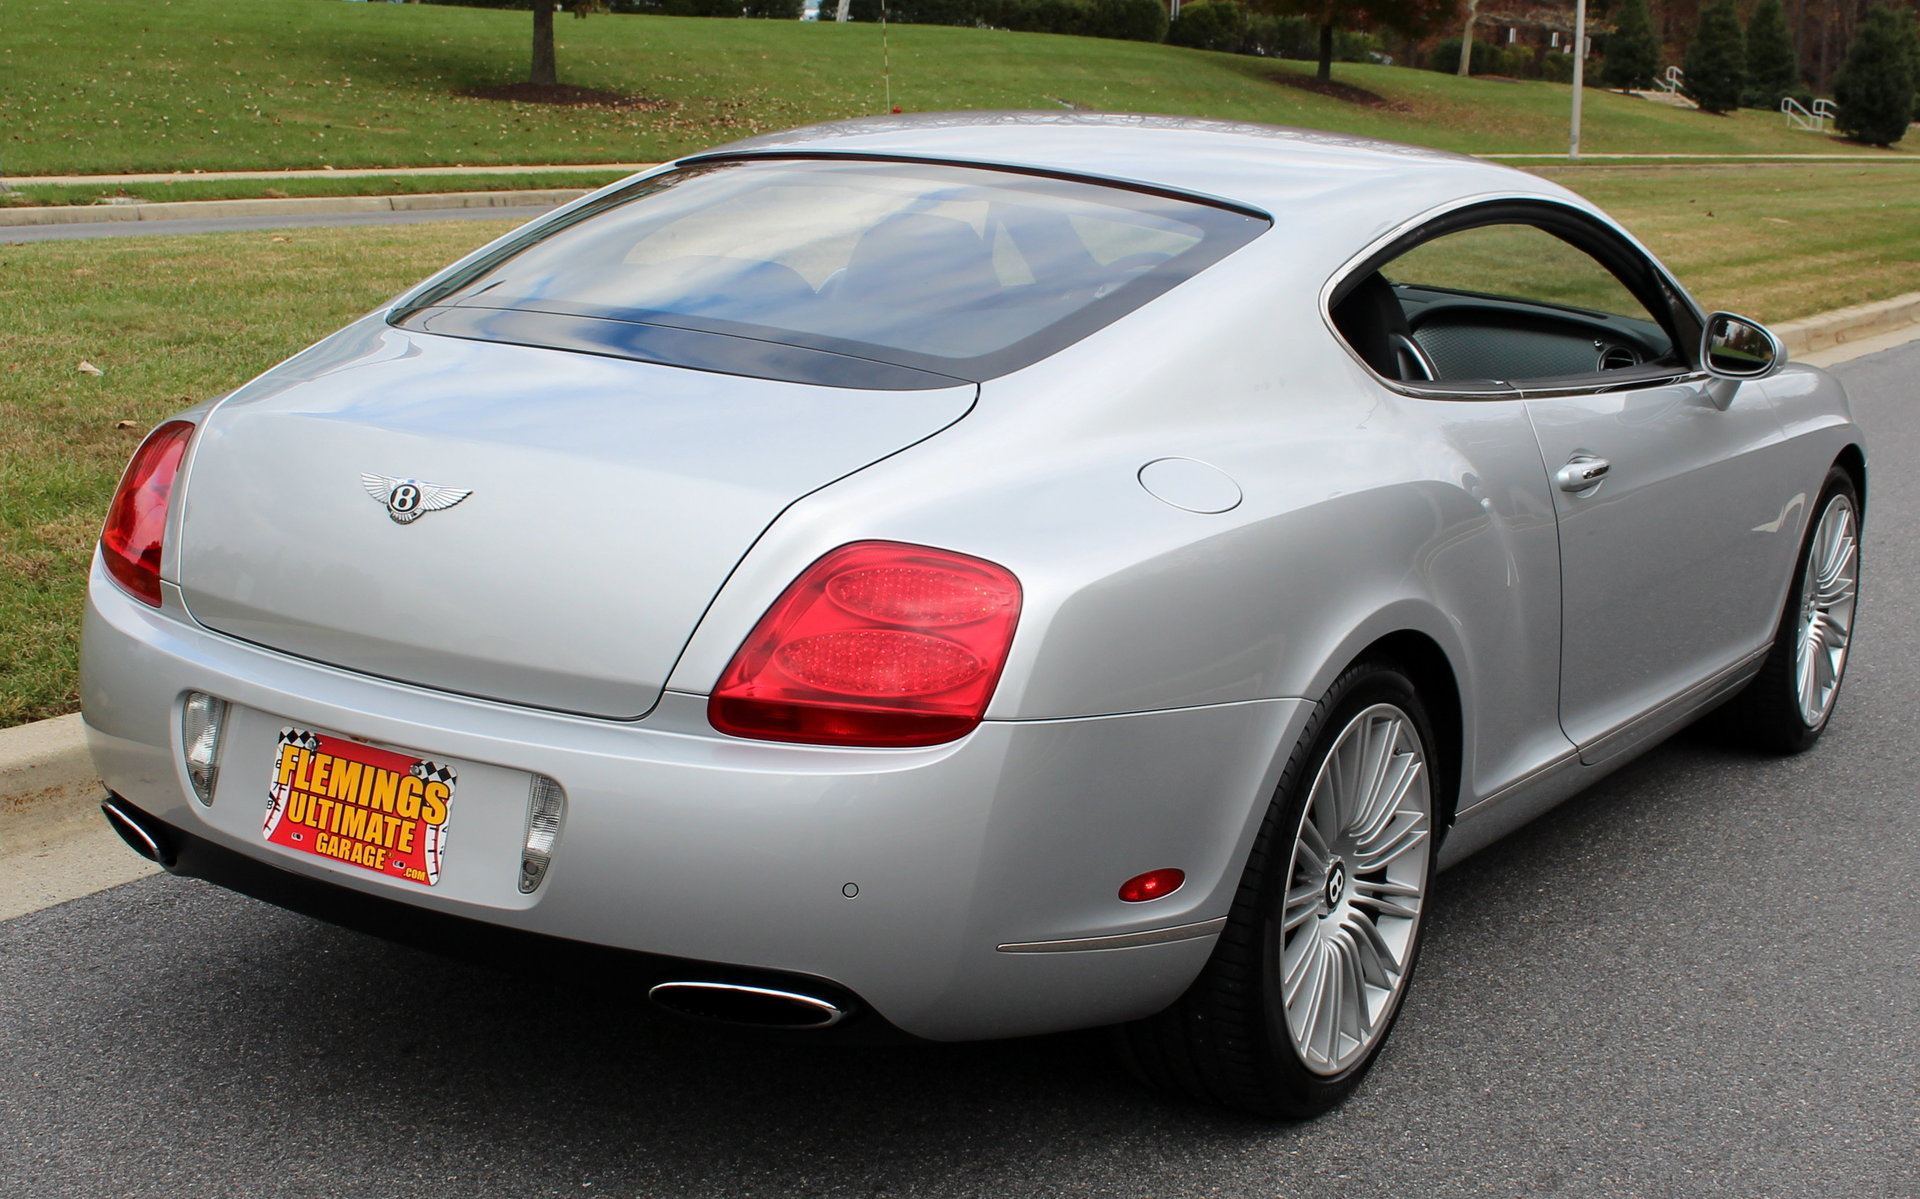 continental in sale for park assist on stitch bentley moonroof flying jamesedition diamond spur cars michigan